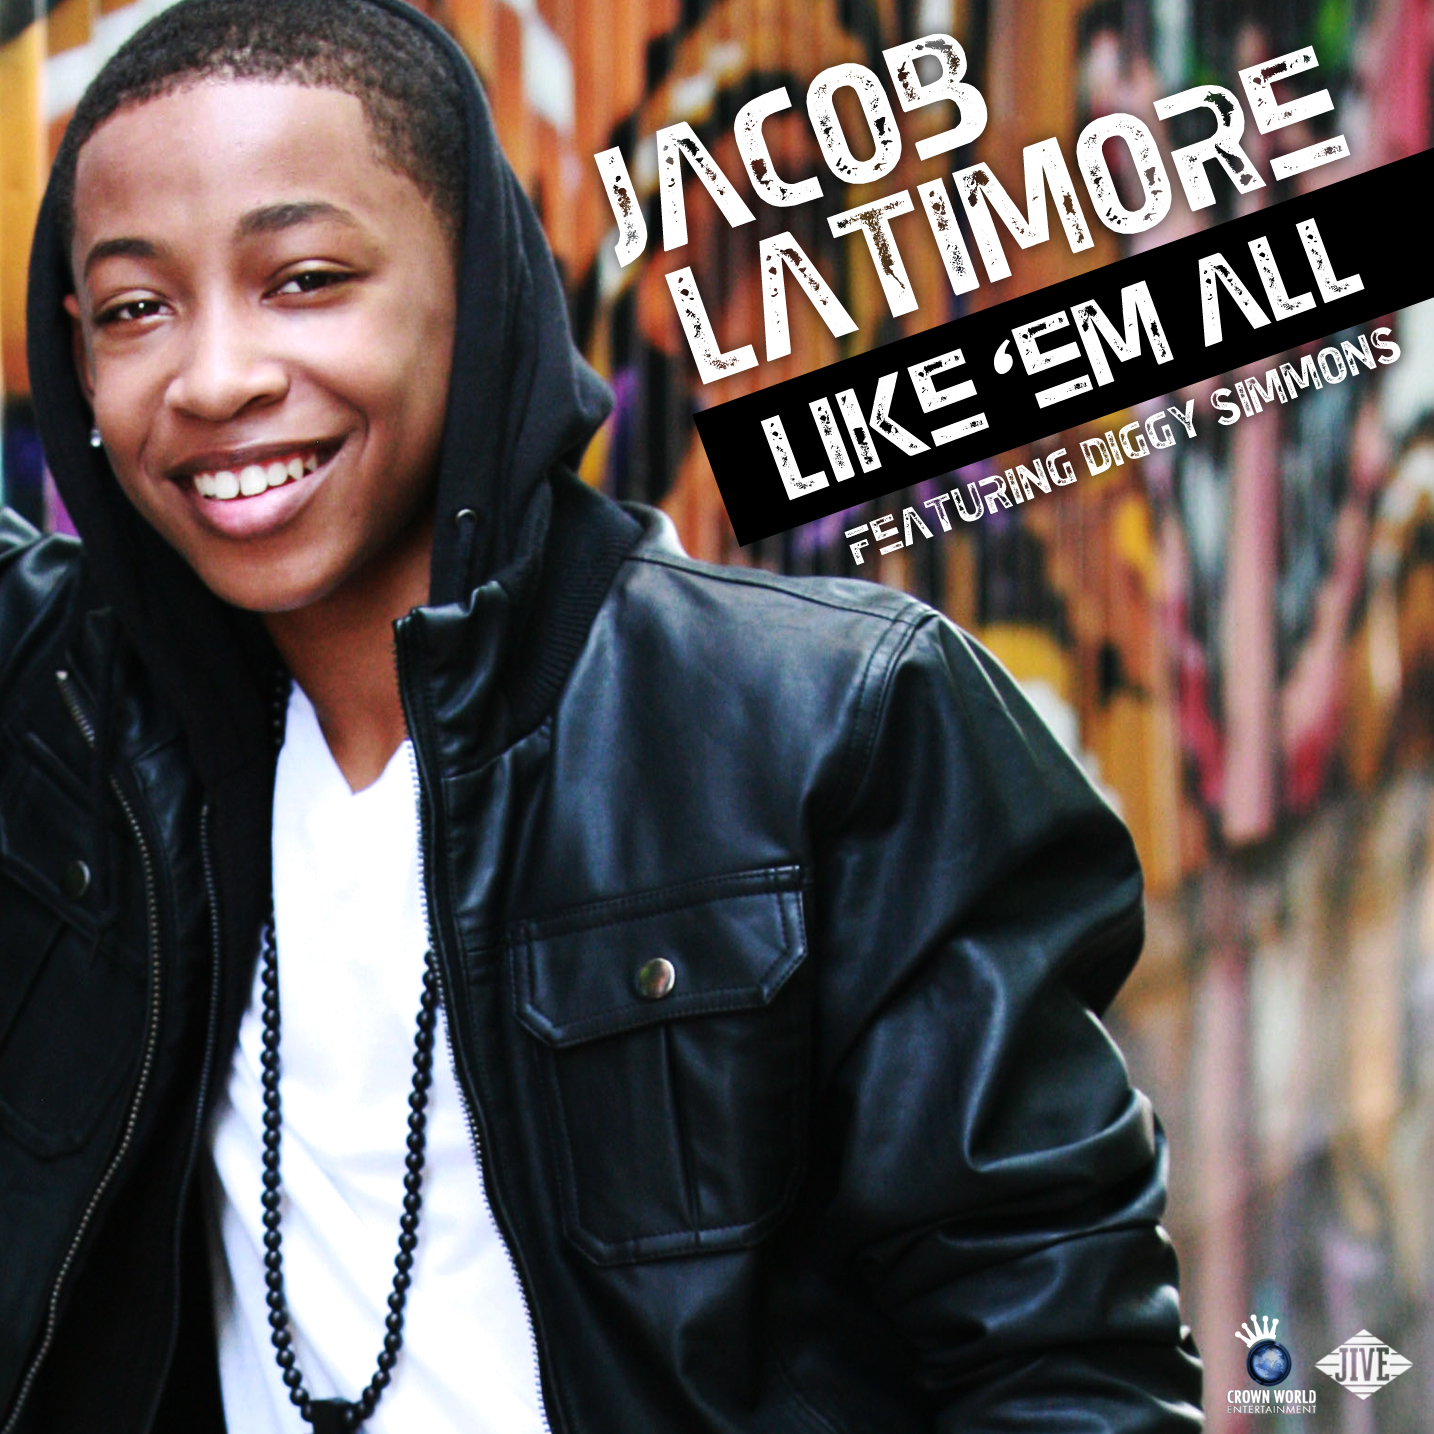 http://images4.fanpop.com/image/photos/24200000/Jacob-jacob-latimore-fans-24271648-1434-1434.jpg